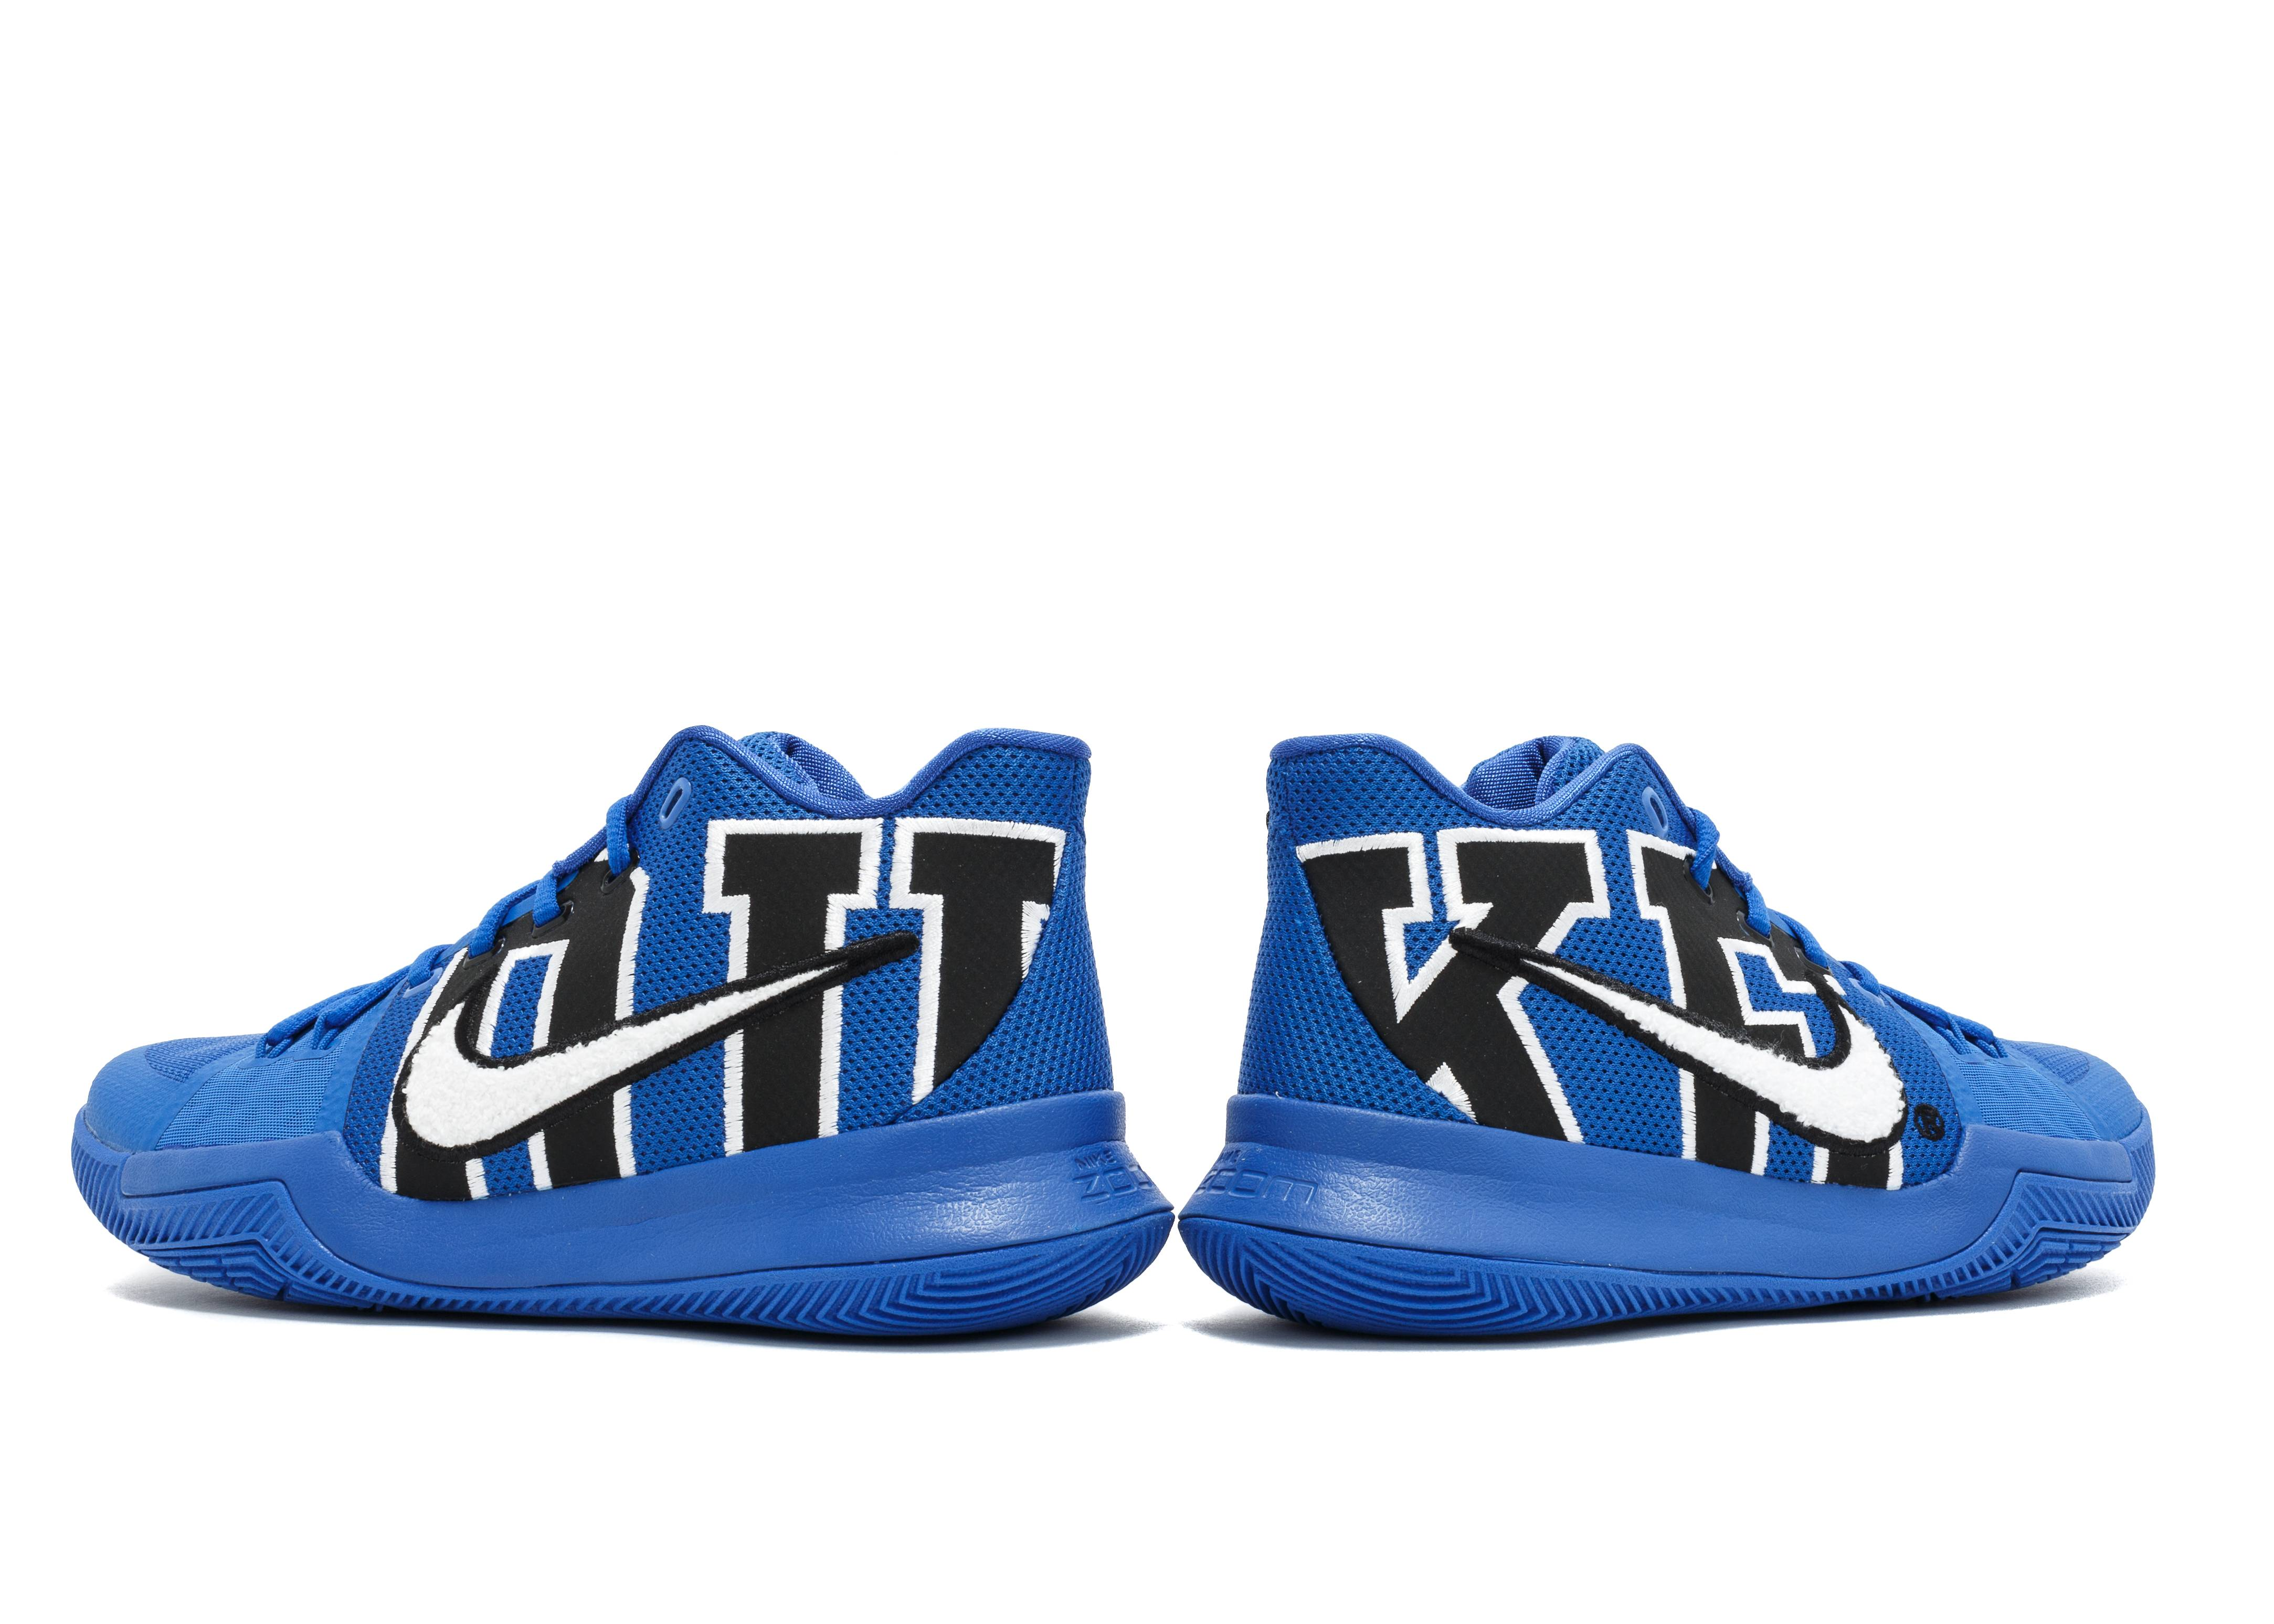 00b69b744406 Kyrie 3 Duke - Nike - 922027 001 - black game royal